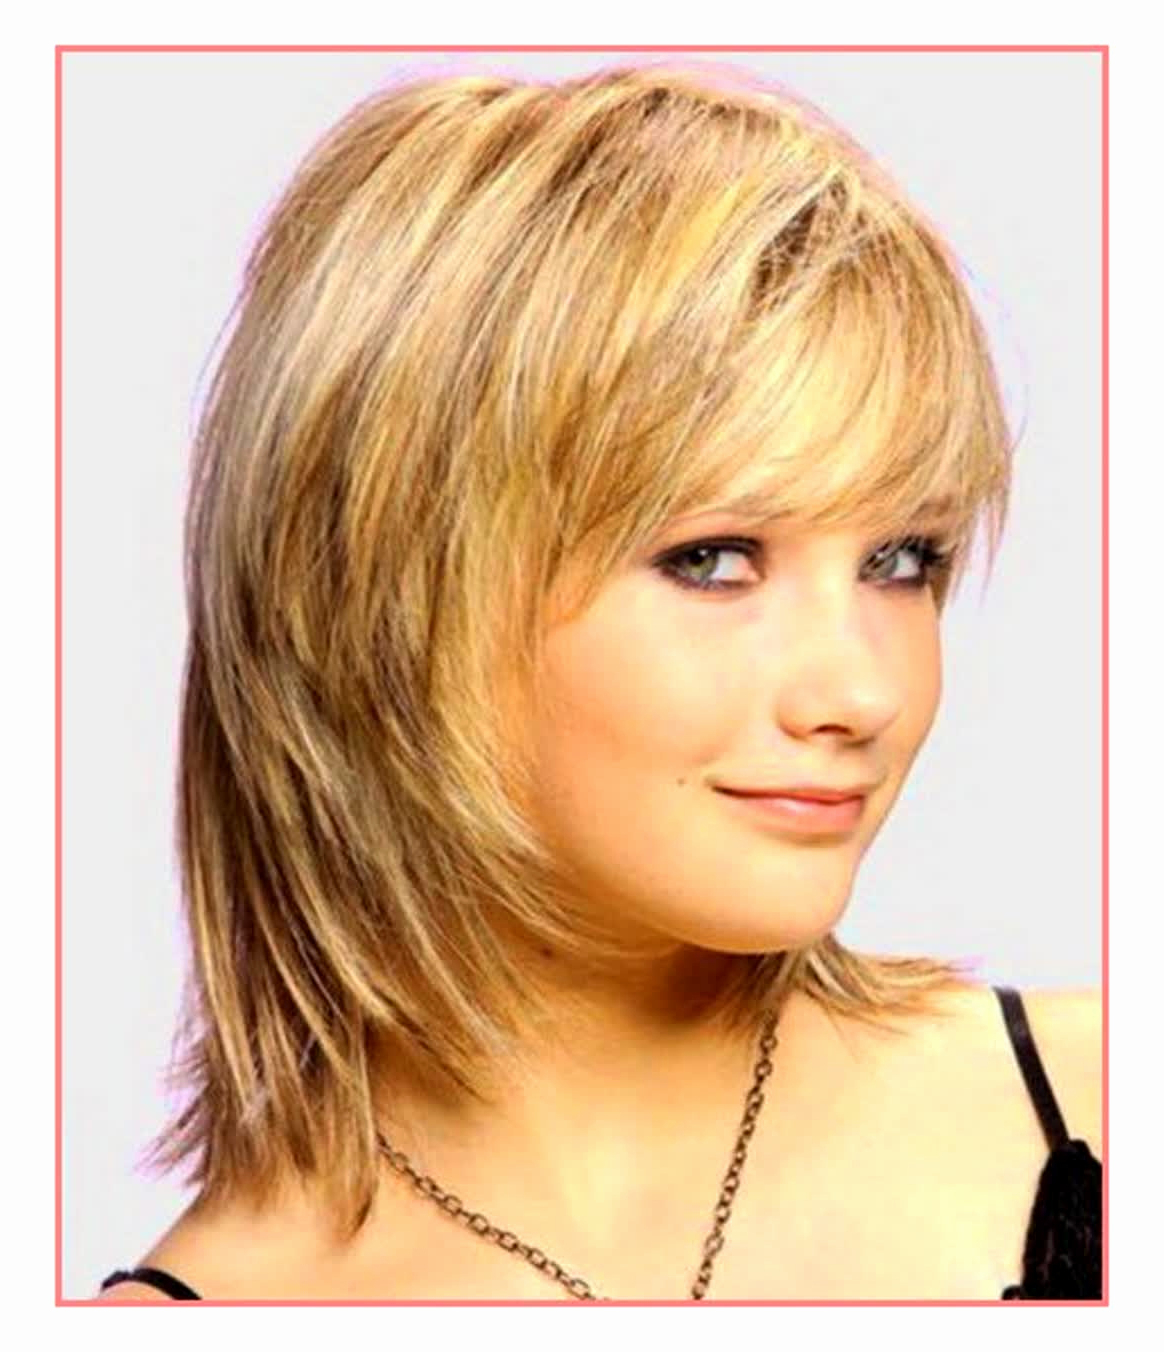 Popular Hairstyles Medium Length Cute Short Haircuts For Fine Hair Pertaining To Cute Medium Short Haircuts (View 23 of 25)